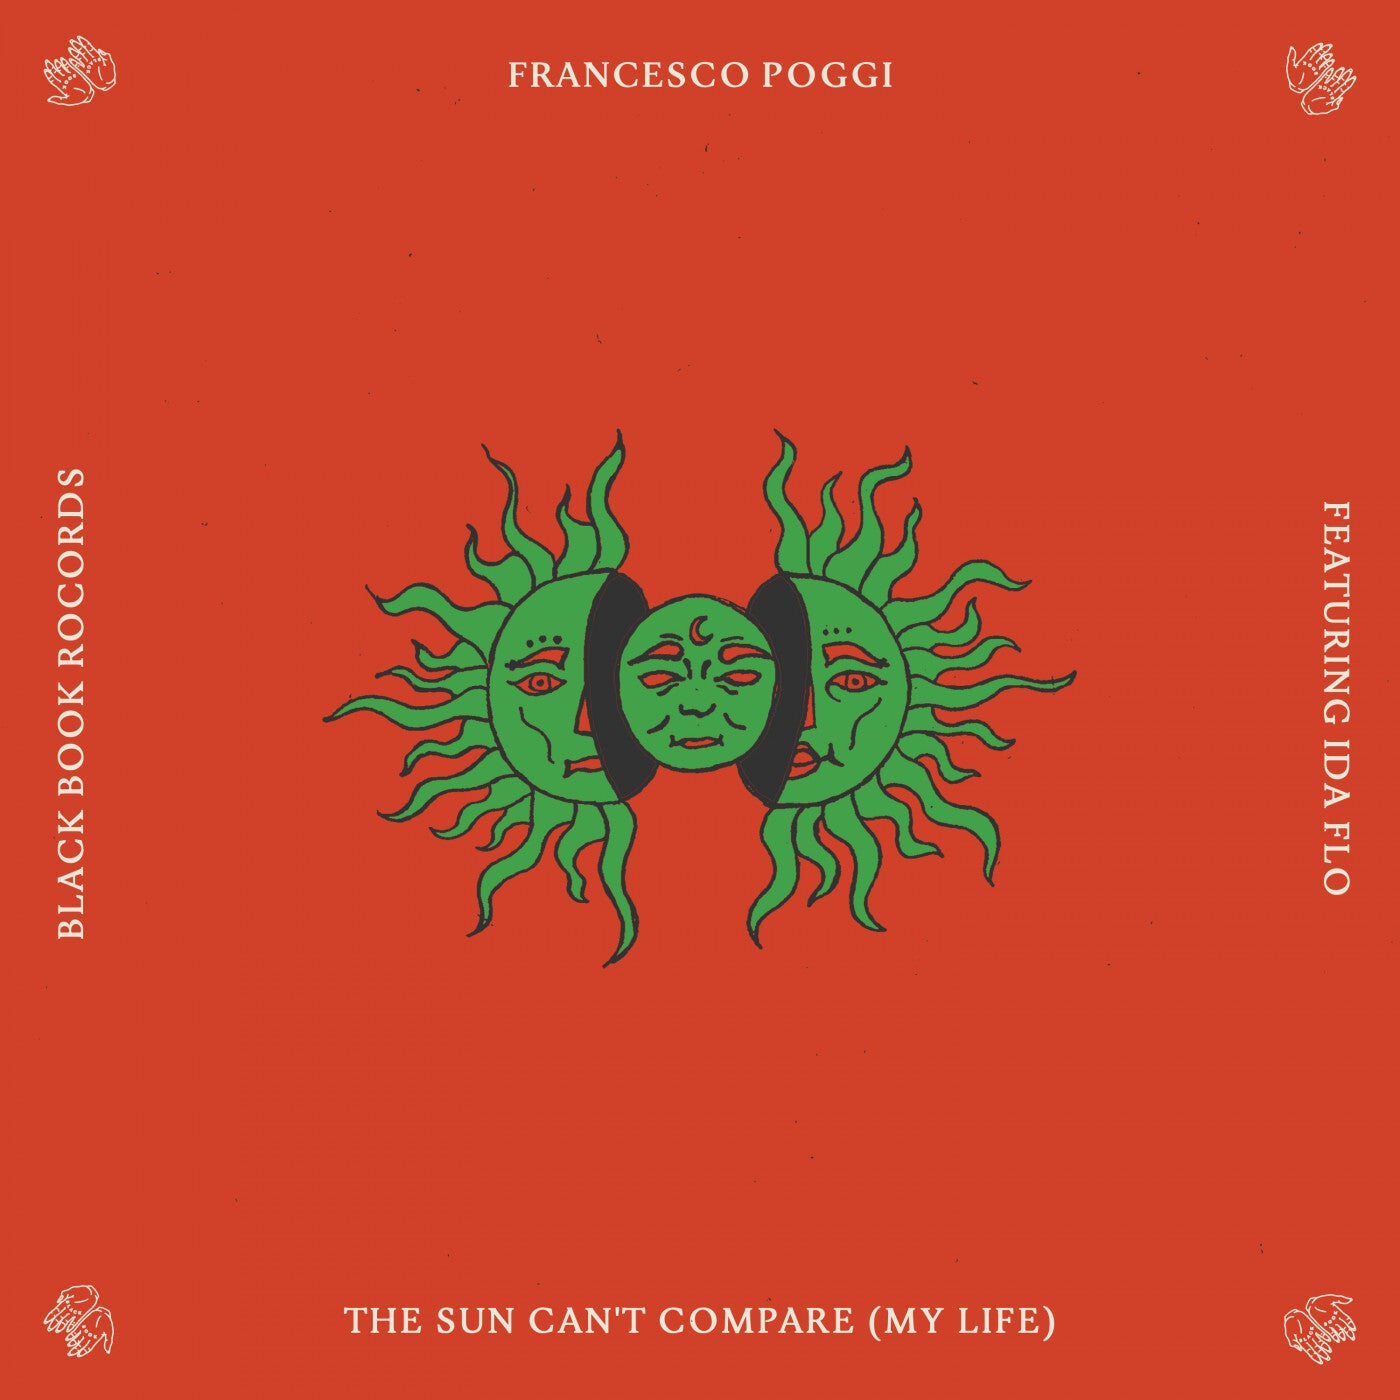 The Sun Can't Compare (My Life) [feat. IDA fLO] (Extended Mix)